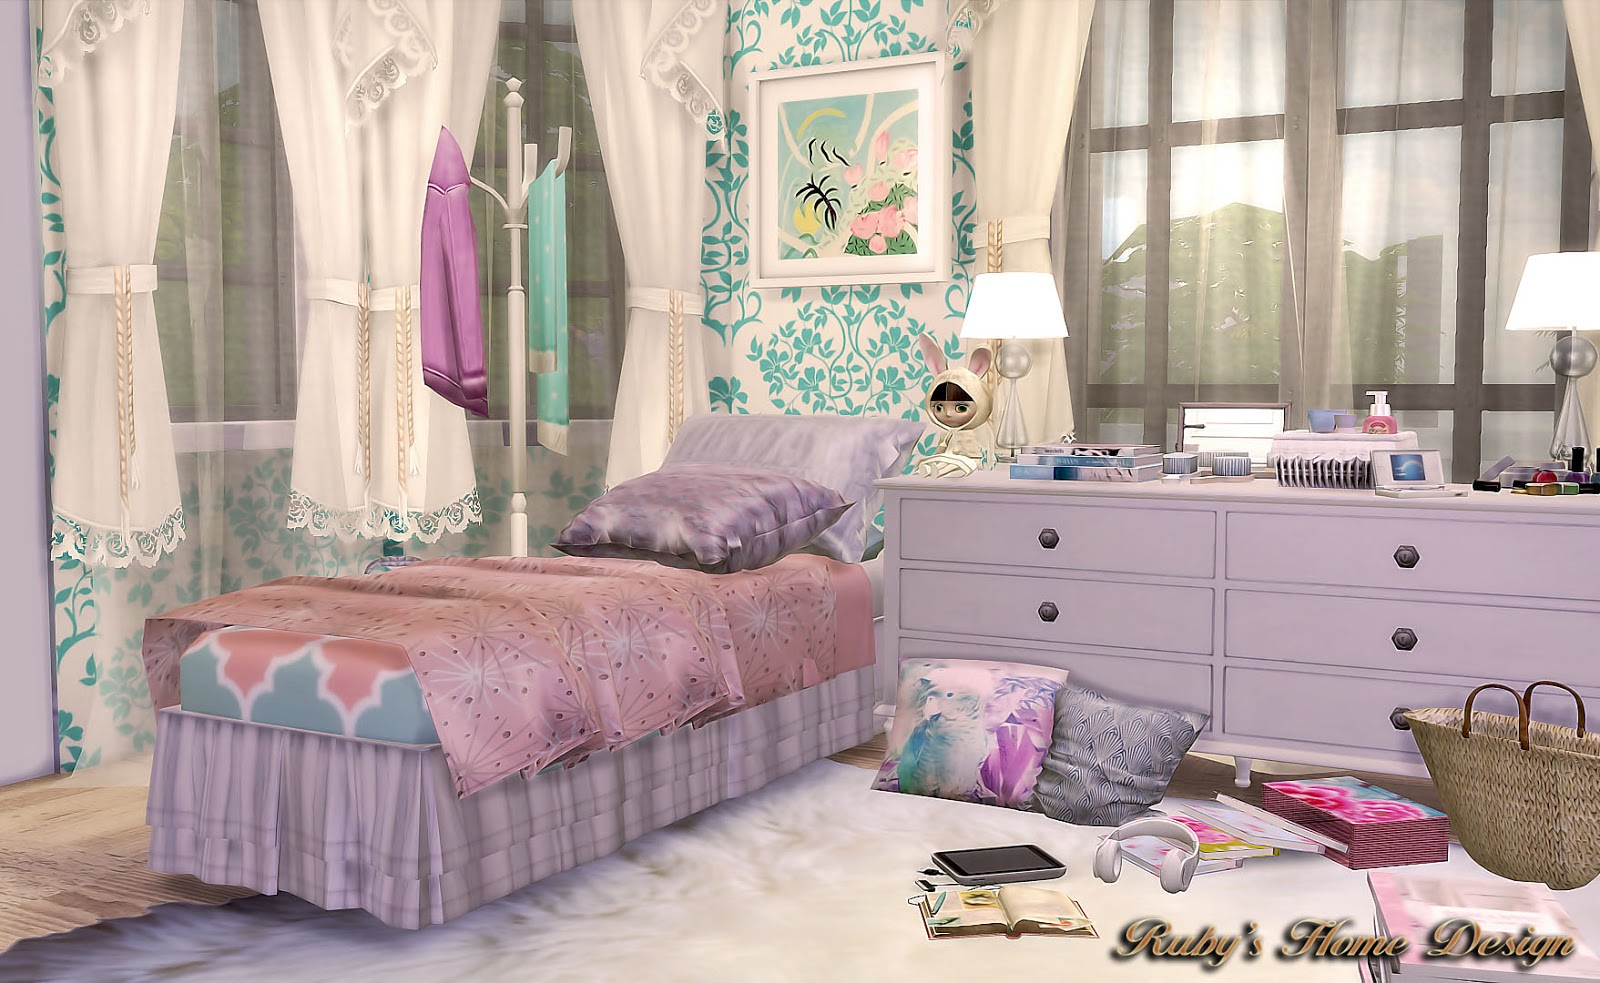 Just a few pictures ruby 39 s home design for 3 bed